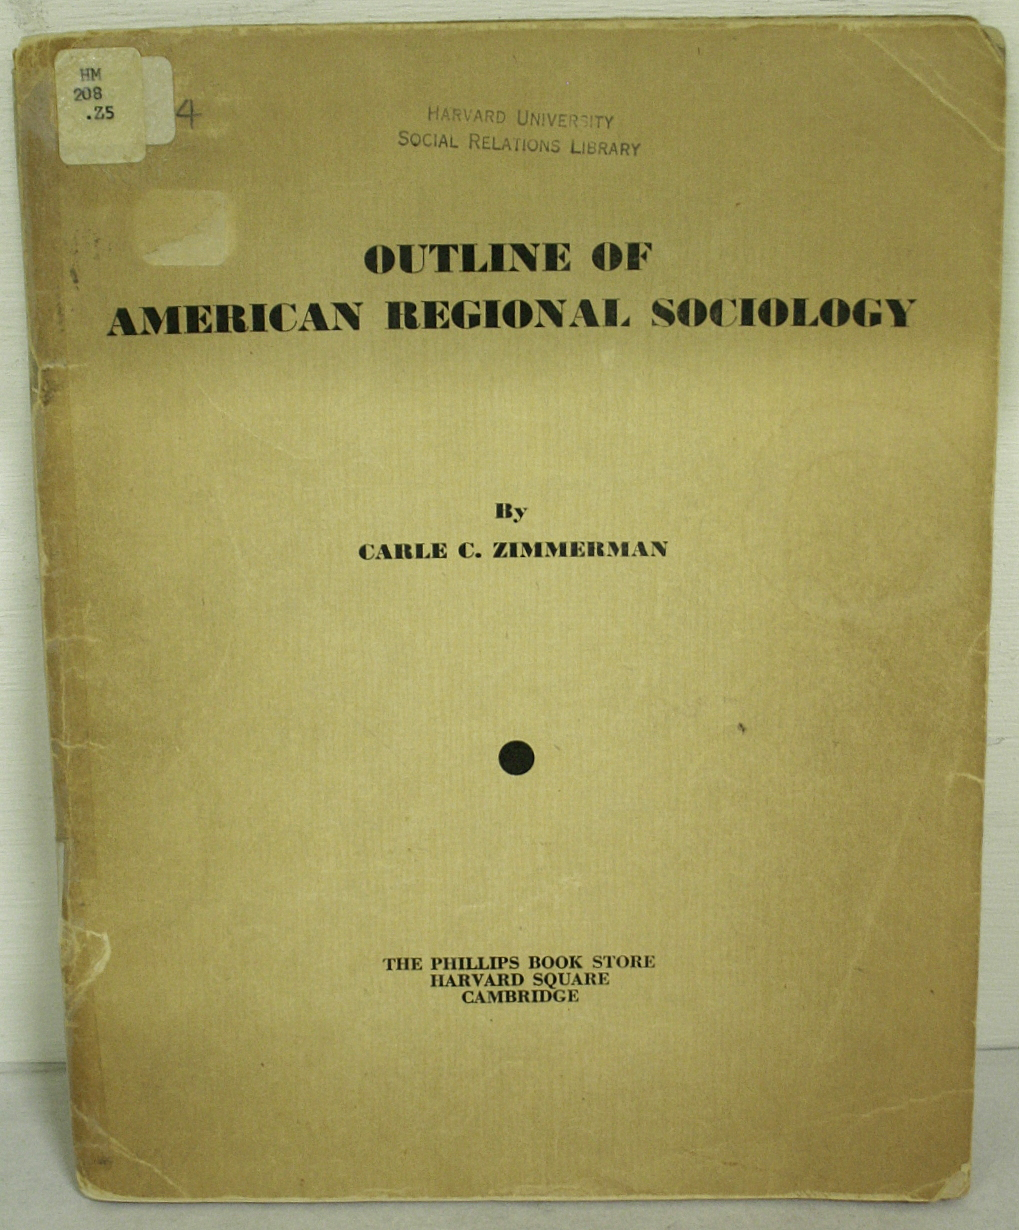 Outline of American regional sociology. BWB20509504